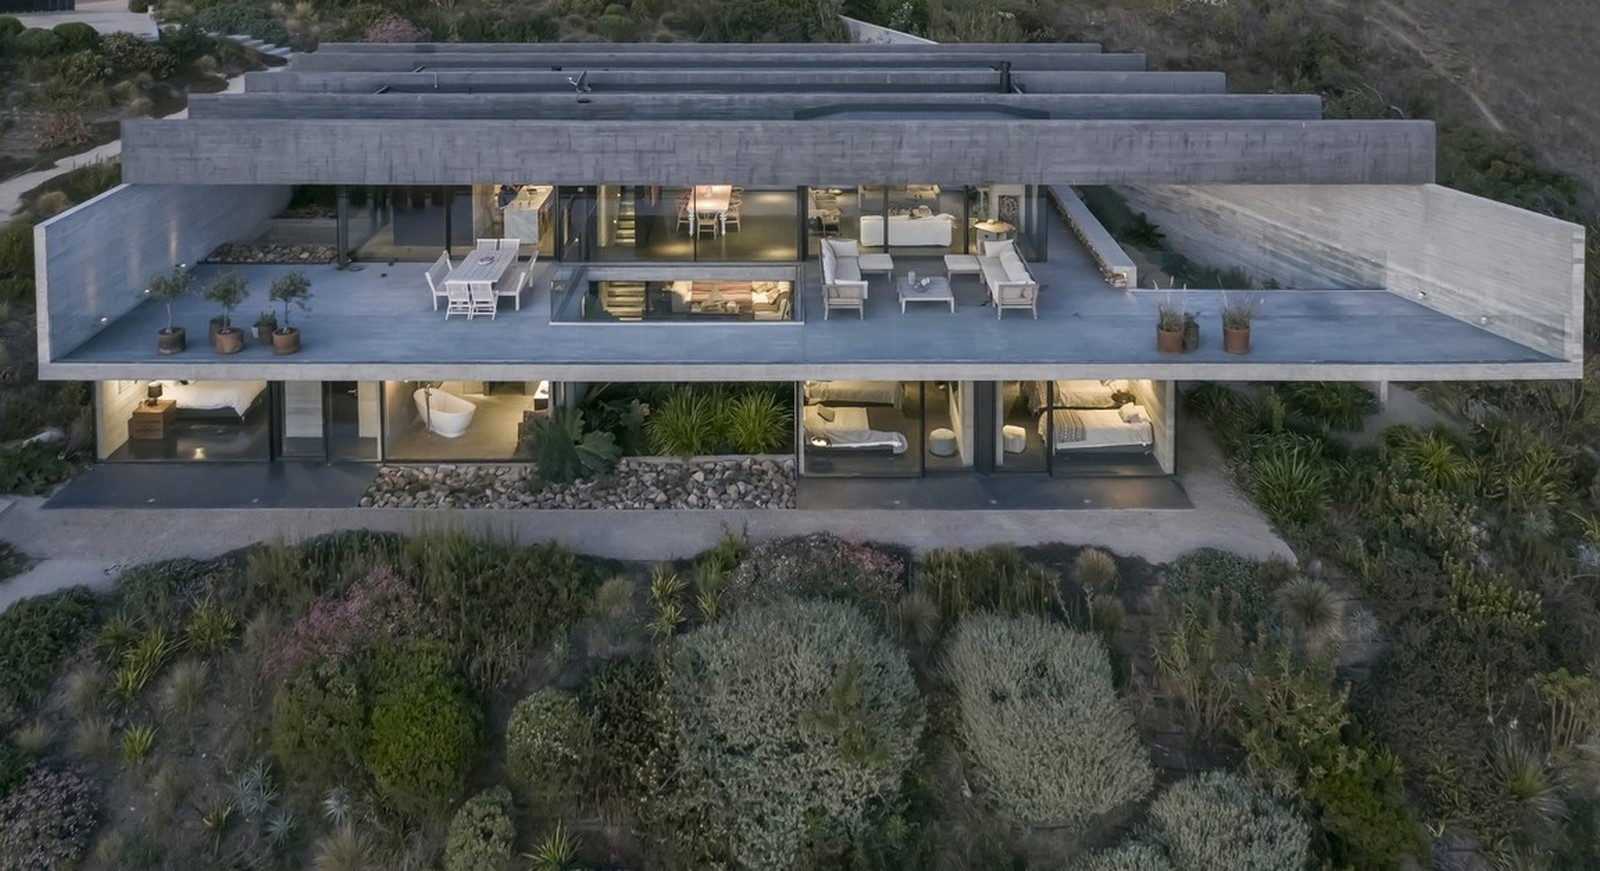 50 Examples of Modern concrete homes - Sheet29